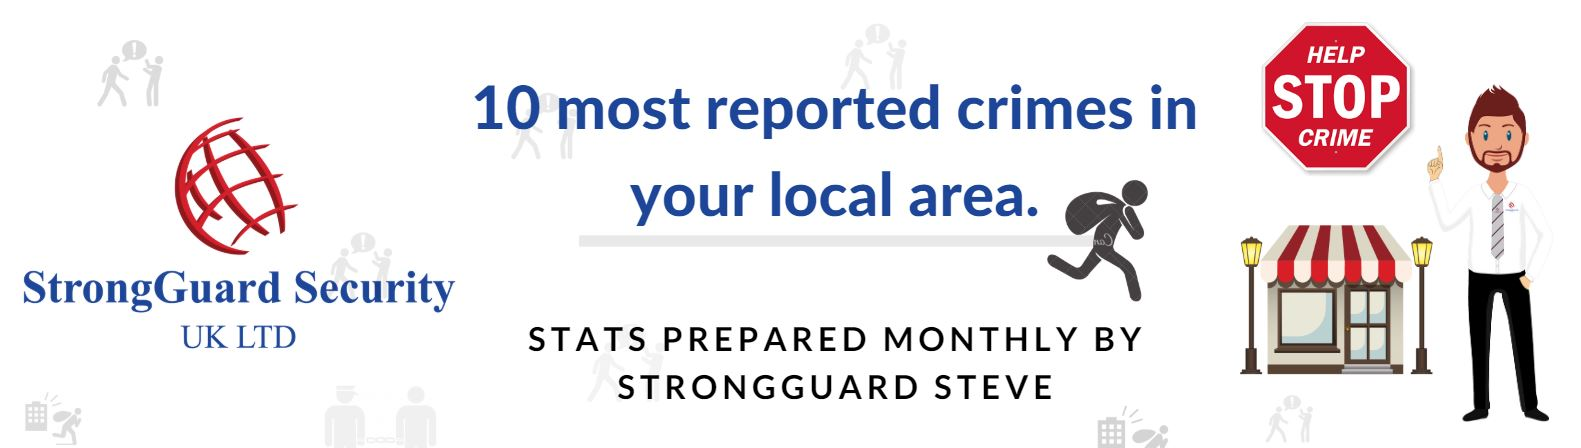 10 MOST REPORTED CRIMES IN ST HELENS - MAY 2019